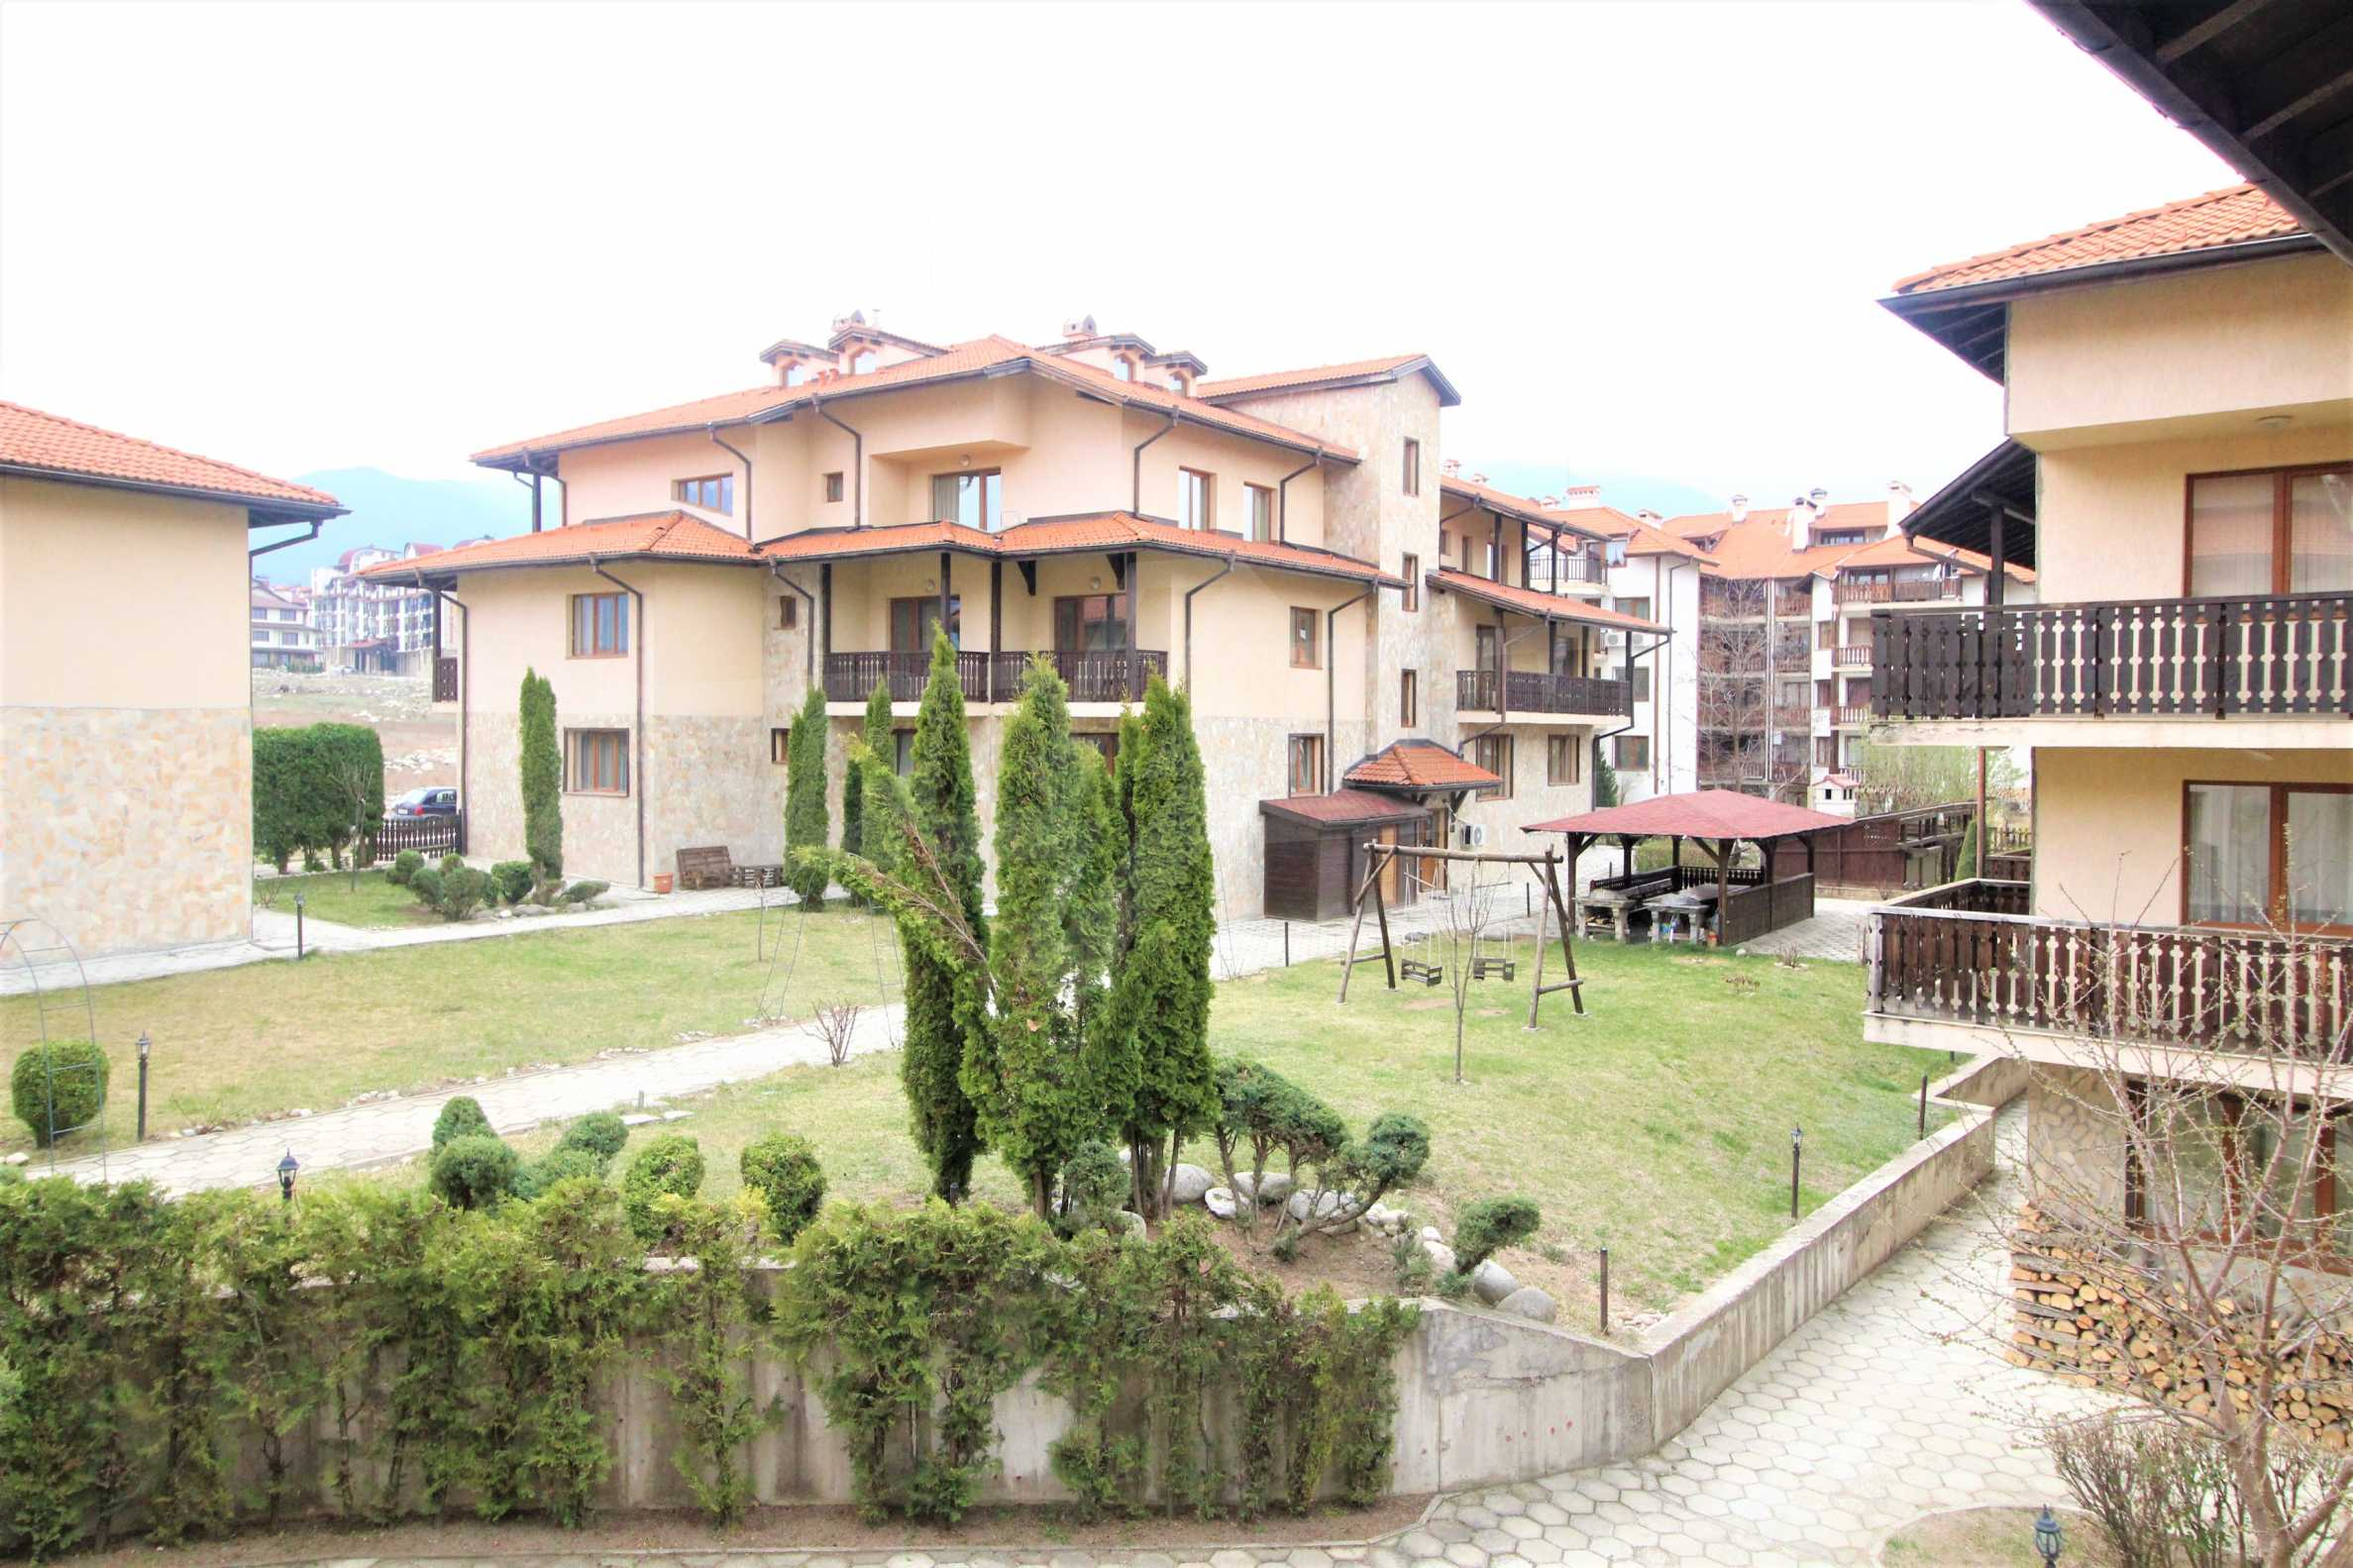 Four-bedroom apartment in Top Lodge complex